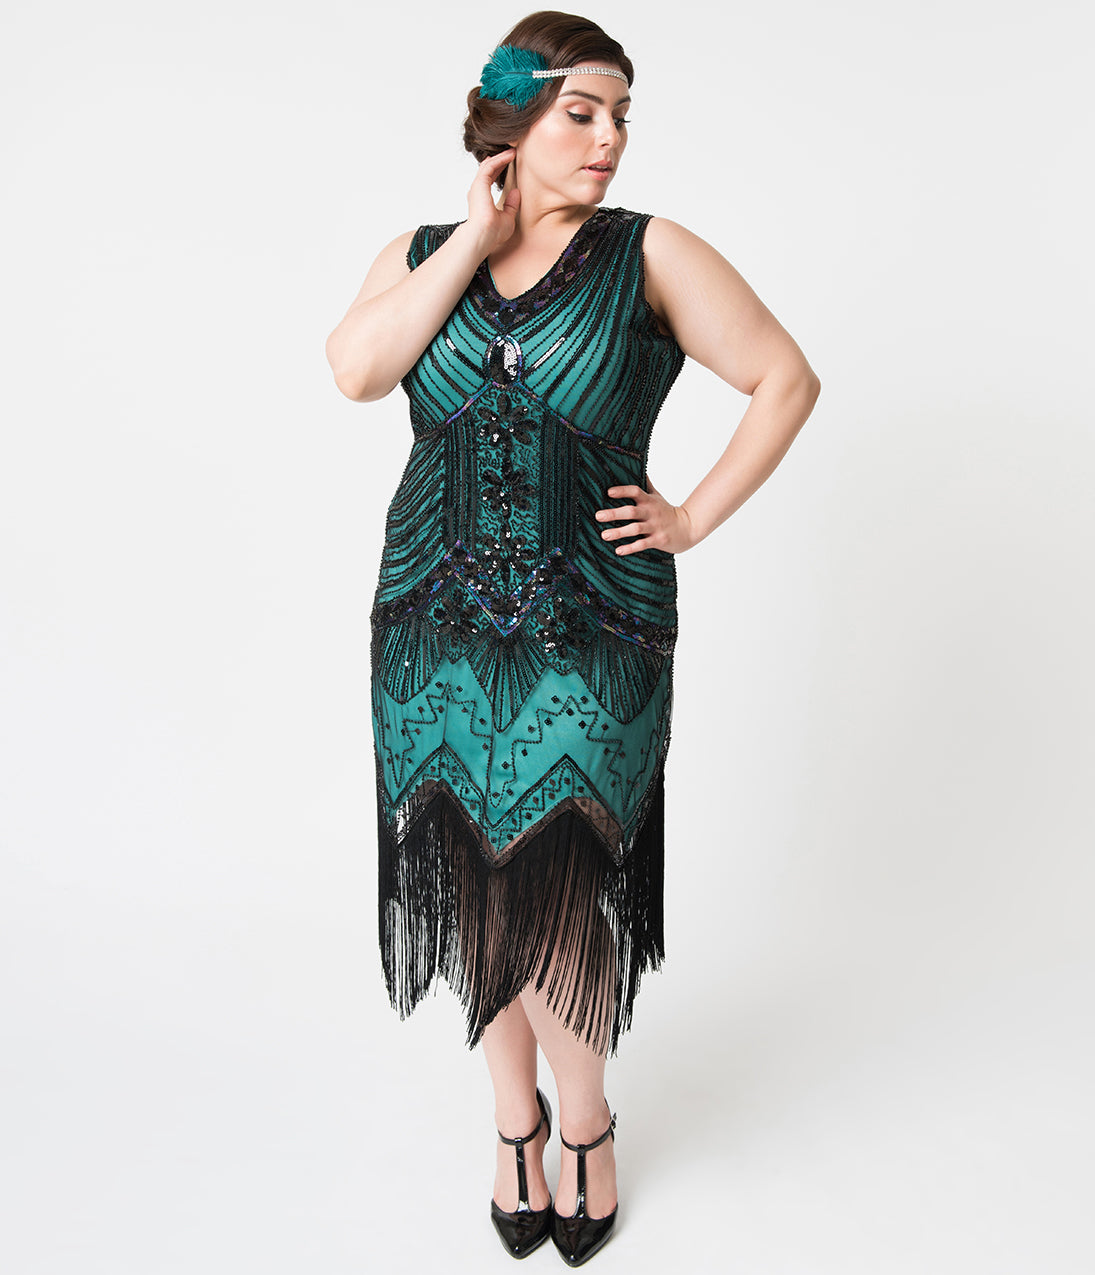 Flapper Dresses & Quality Flapper Costumes Unique Vintage Plus Size 1920S Deco Teal  Black Veronique Fringe Flapper Dress $74.00 AT vintagedancer.com